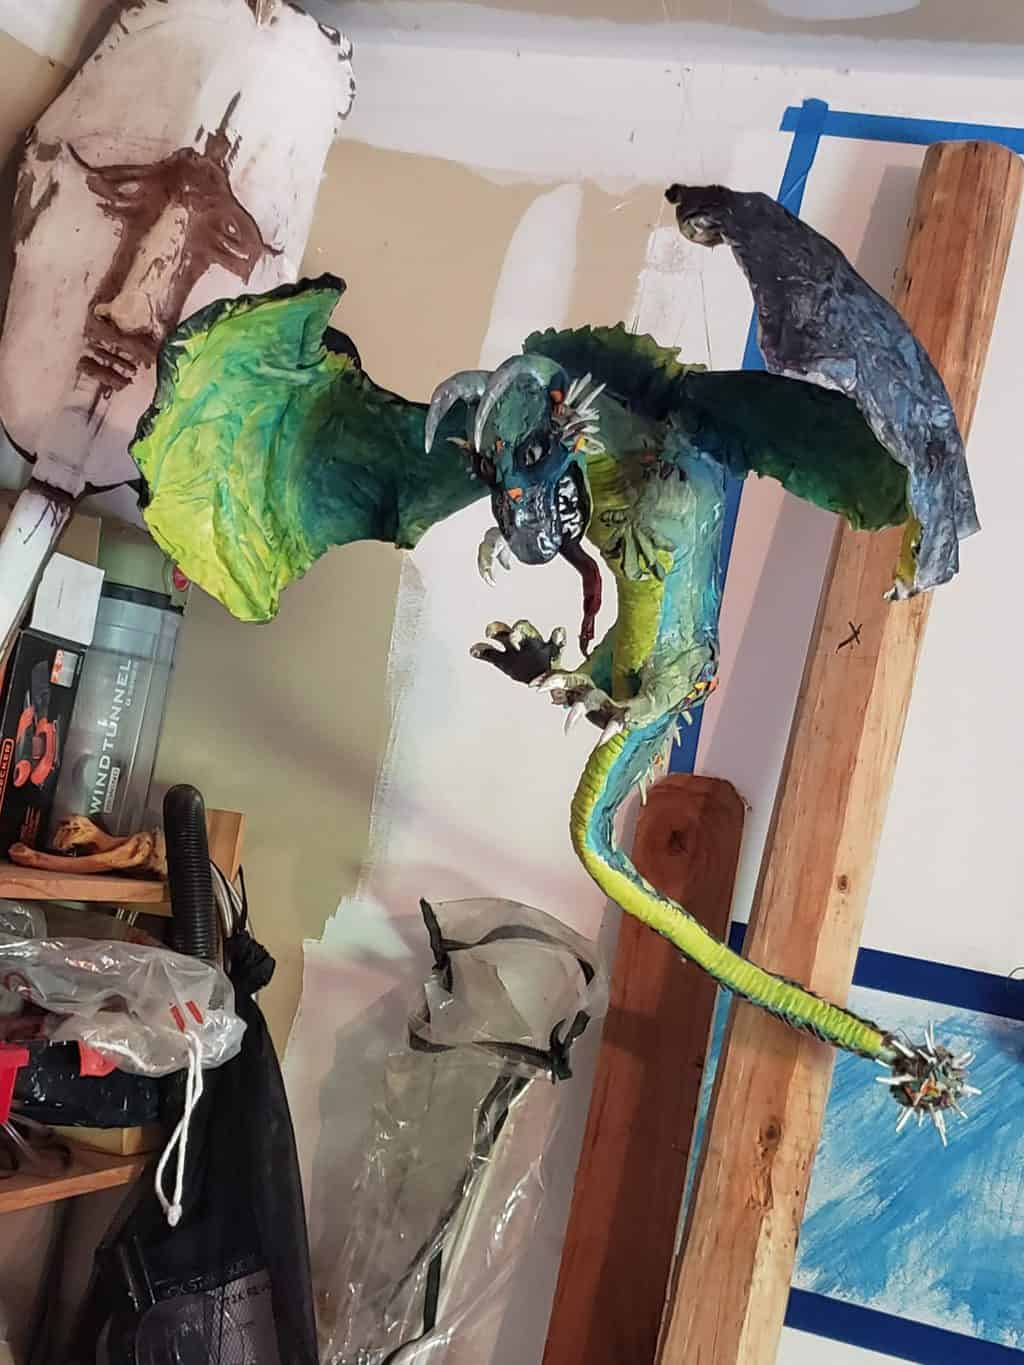 Dragon named Baby from Game of Thrones - paper mache